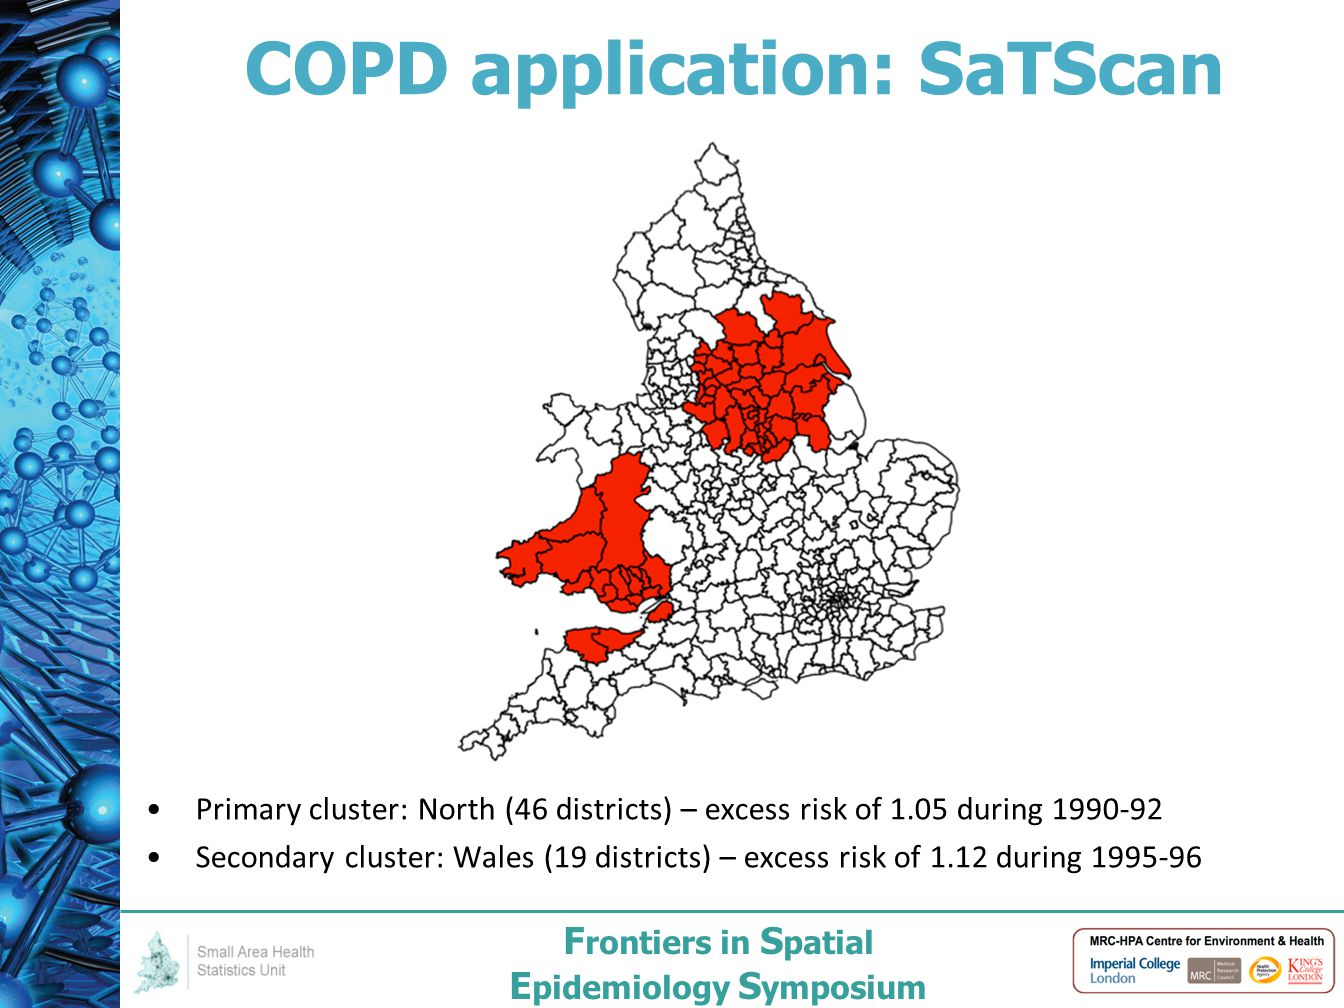 F rontiers in S patial E pidemiology S ymposium COPD application: SaTScan Primary cluster: North (46 districts) – excess risk of 1.05 during 1990-92 Secondary cluster: Wales (19 districts) – excess risk of 1.12 during 1995-96